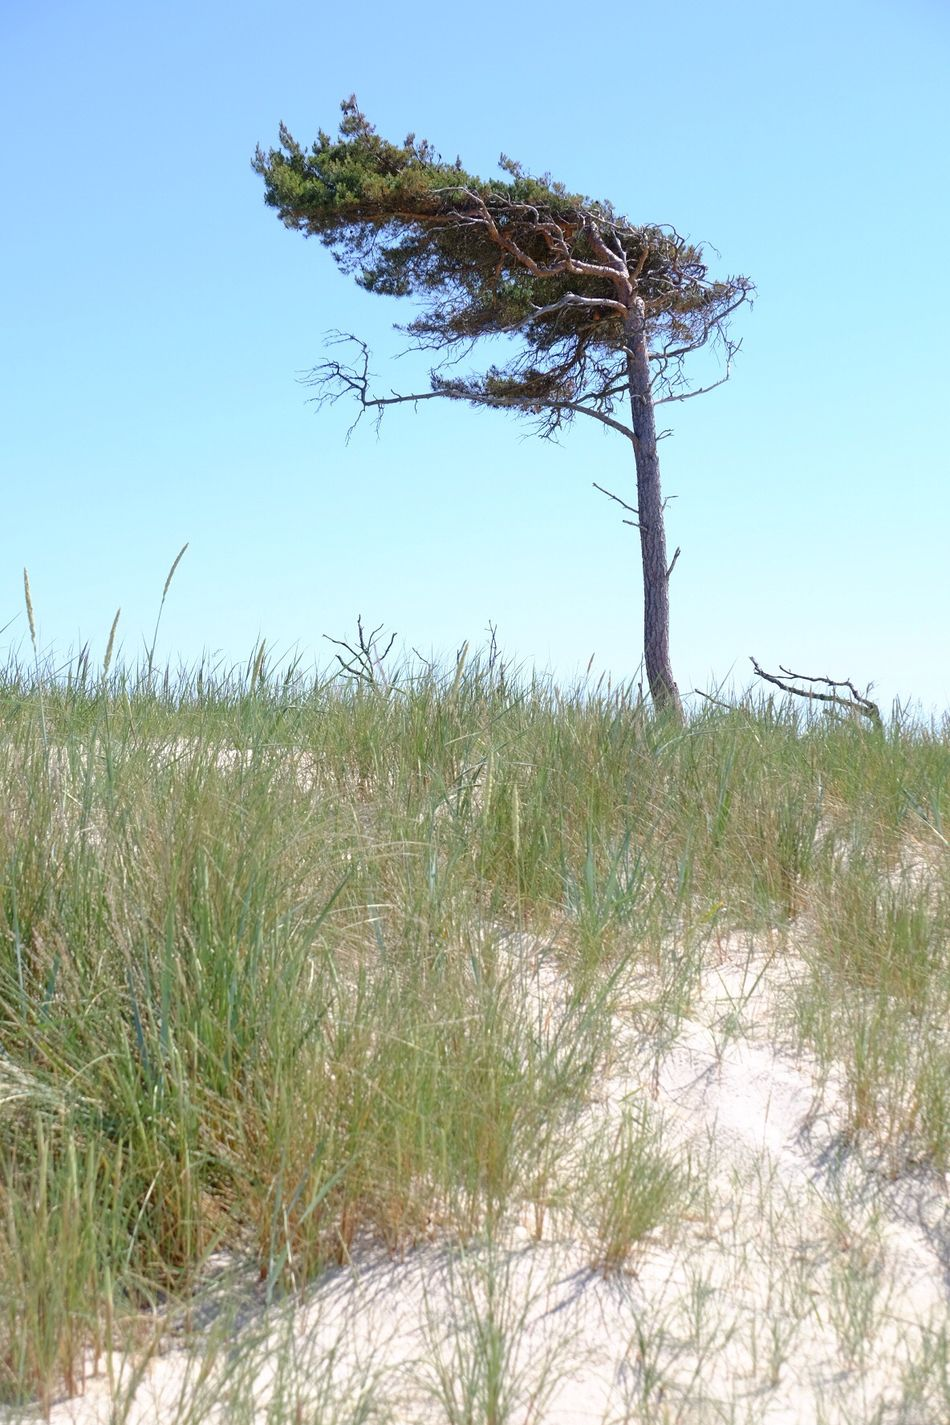 Lonely tree on sand dune Nature Growth Tree Grass Tranquility Tranquil Scene Plant Clear Sky Outdoors Beauty In Nature No People Scenics Day Landscape Beach Marram Grass Sky Sand Dune Beach Photography